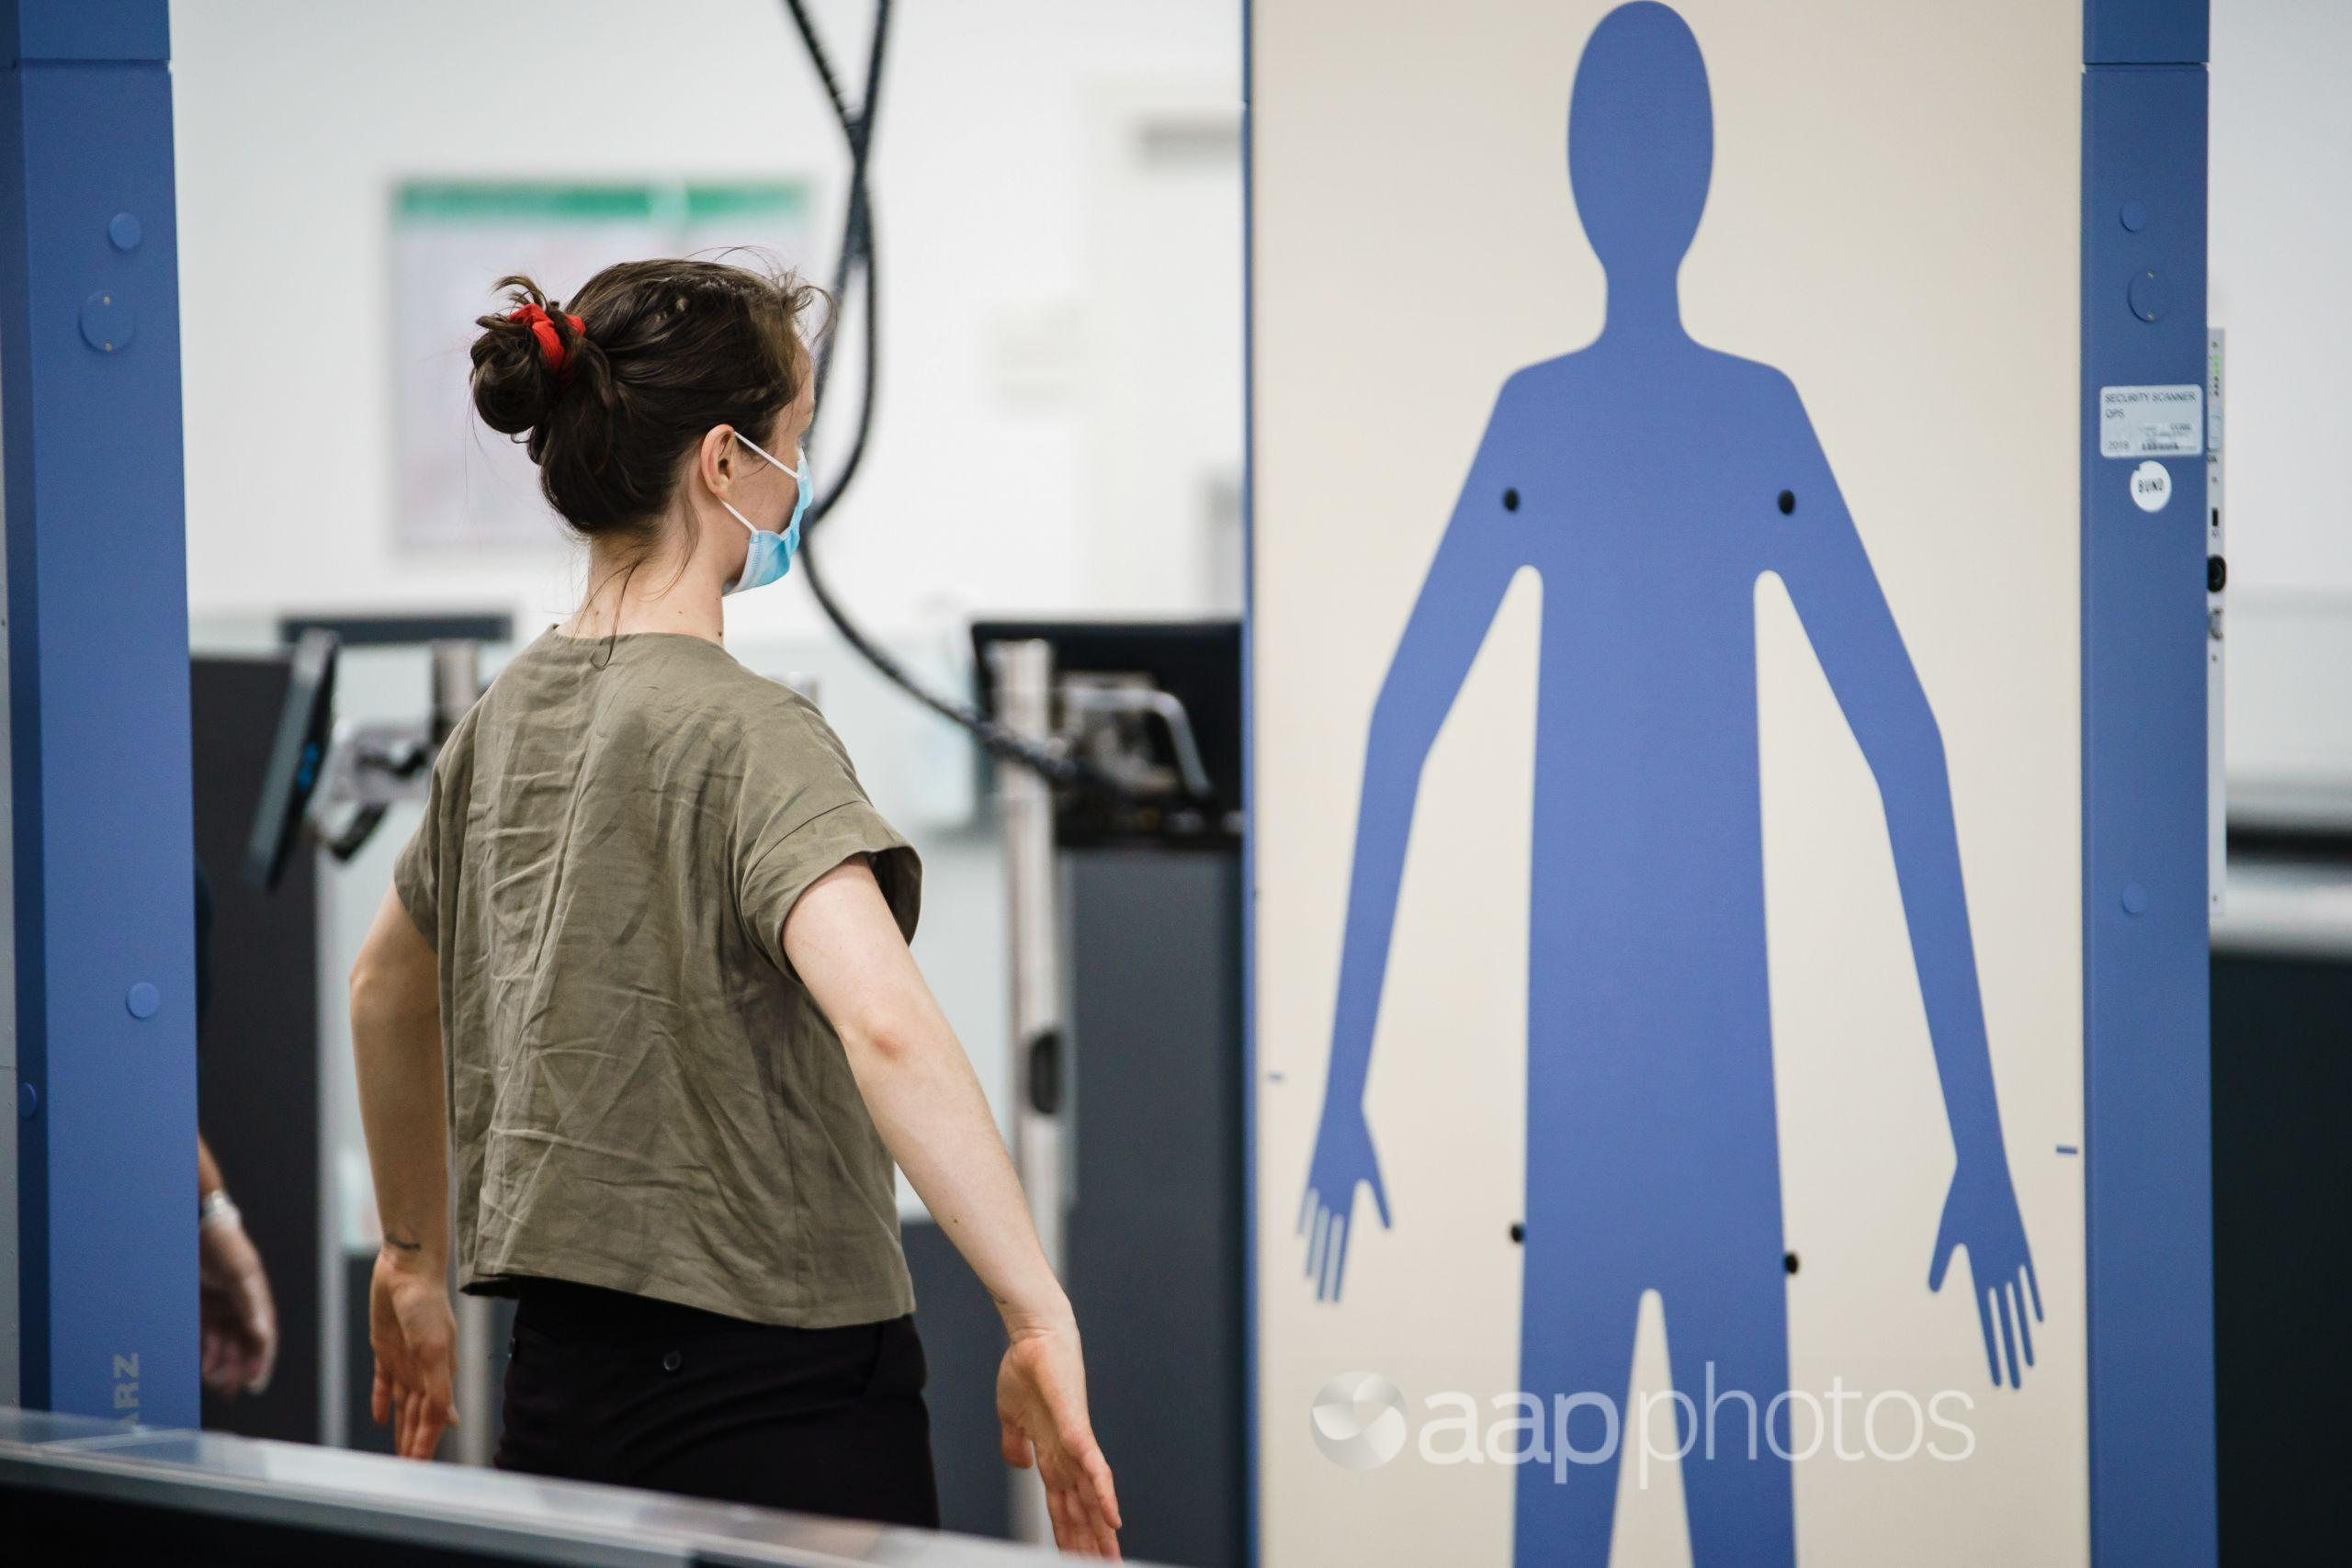 A passenger stands in a body scanner at an airport.